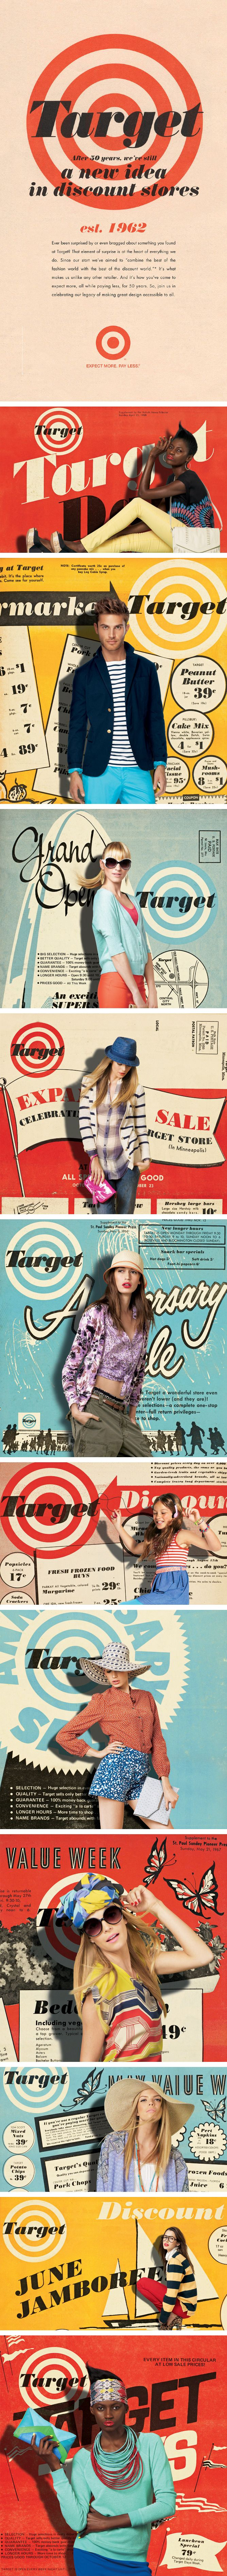 Target's 50th Anniversary. Vintage 60's Target ads were used as the backdrop to modern images of models featuring Target's modern day fashions, by Allan Peters